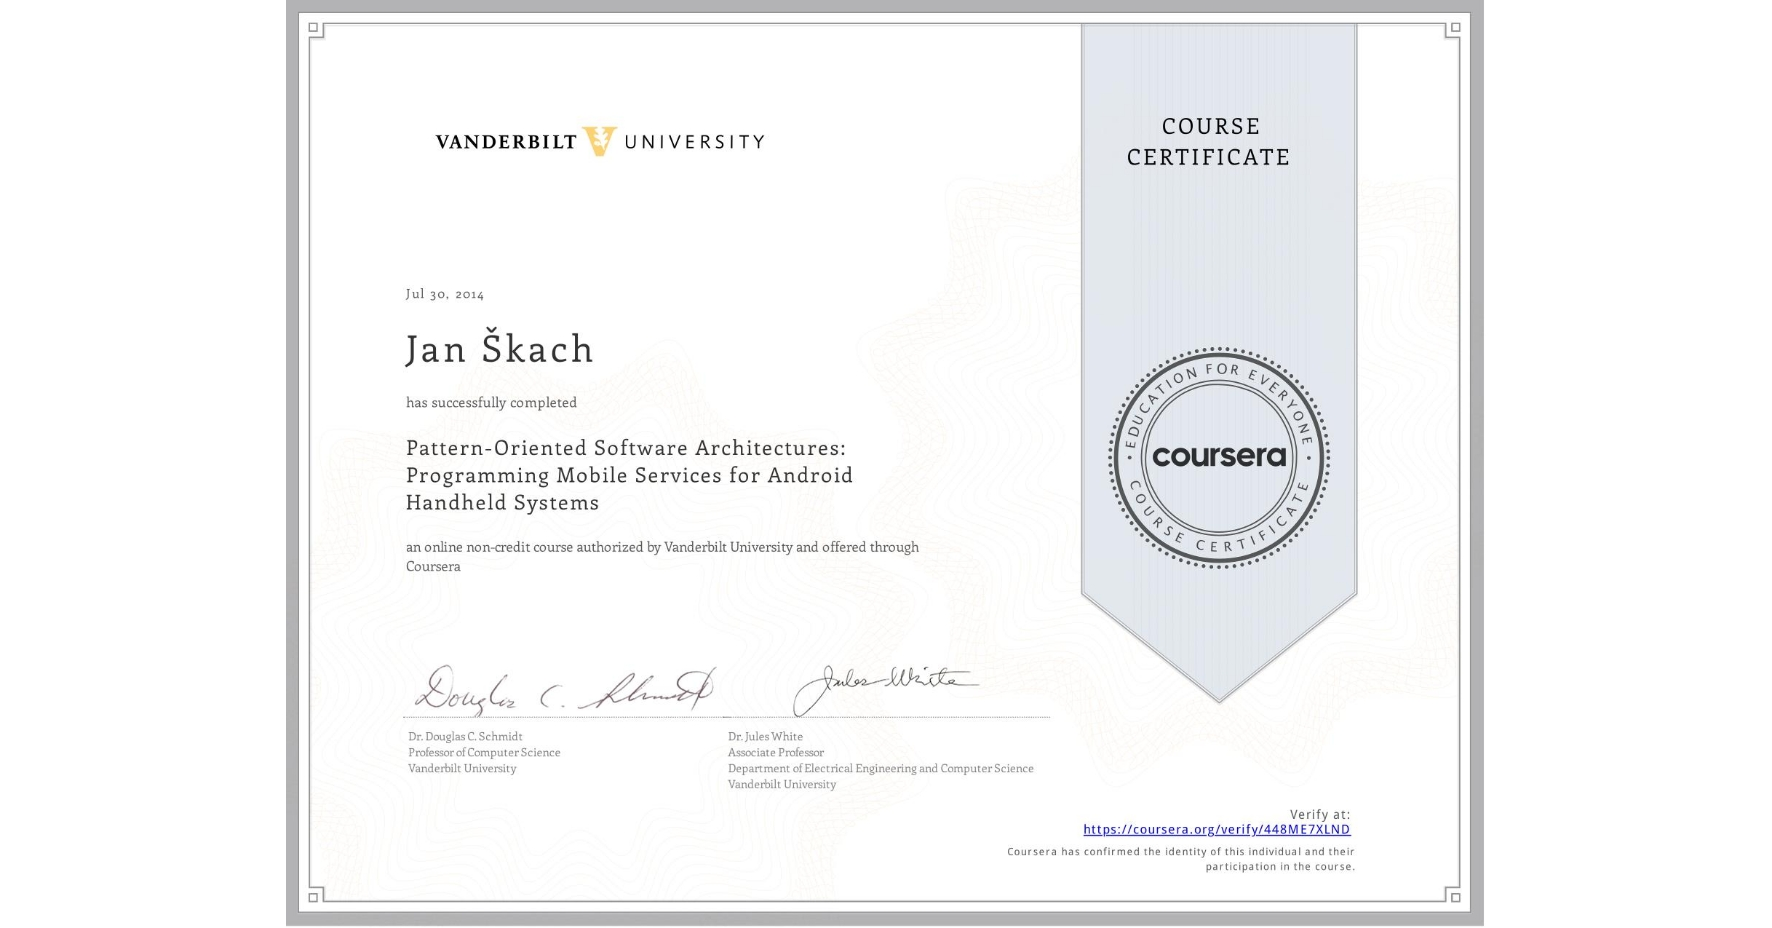 View certificate for Jan Škach, Pattern-Oriented Software Architectures: Programming Mobile Services for Android Handheld Systems, an online non-credit course authorized by Vanderbilt University and offered through Coursera